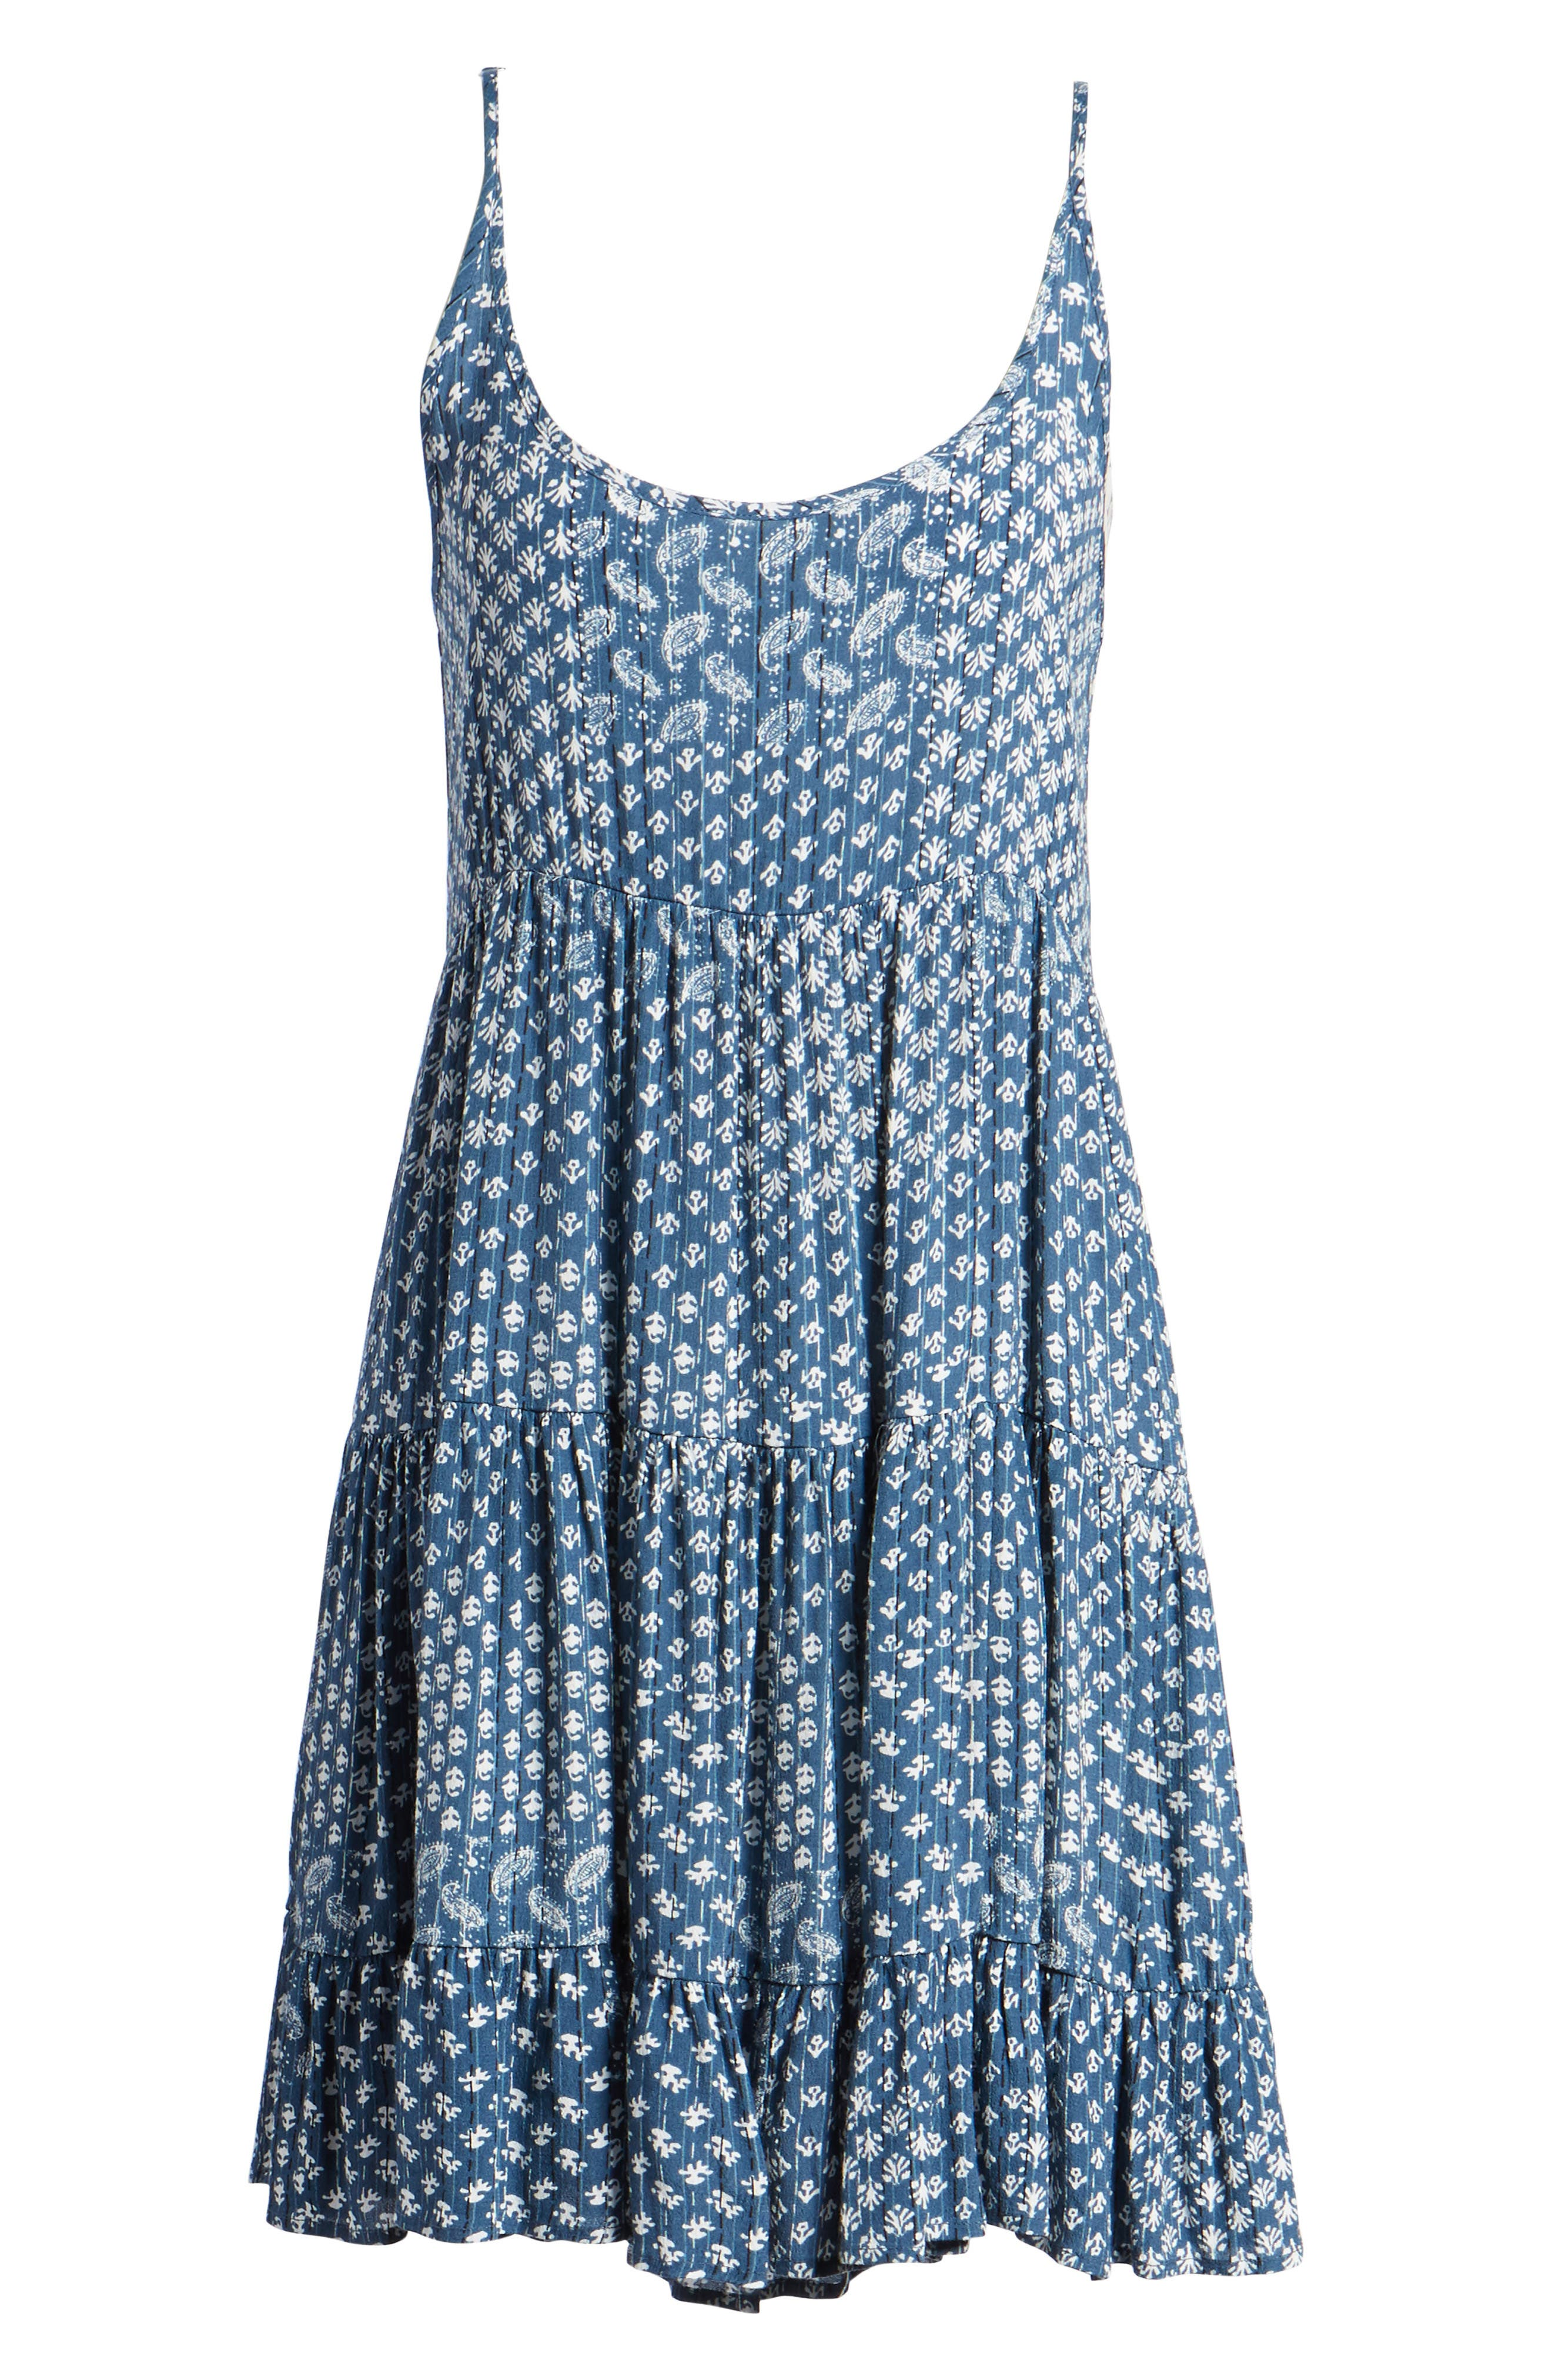 Amber Swing Dress,                             Alternate thumbnail 6, color,                             INDIGO PATCHWORK